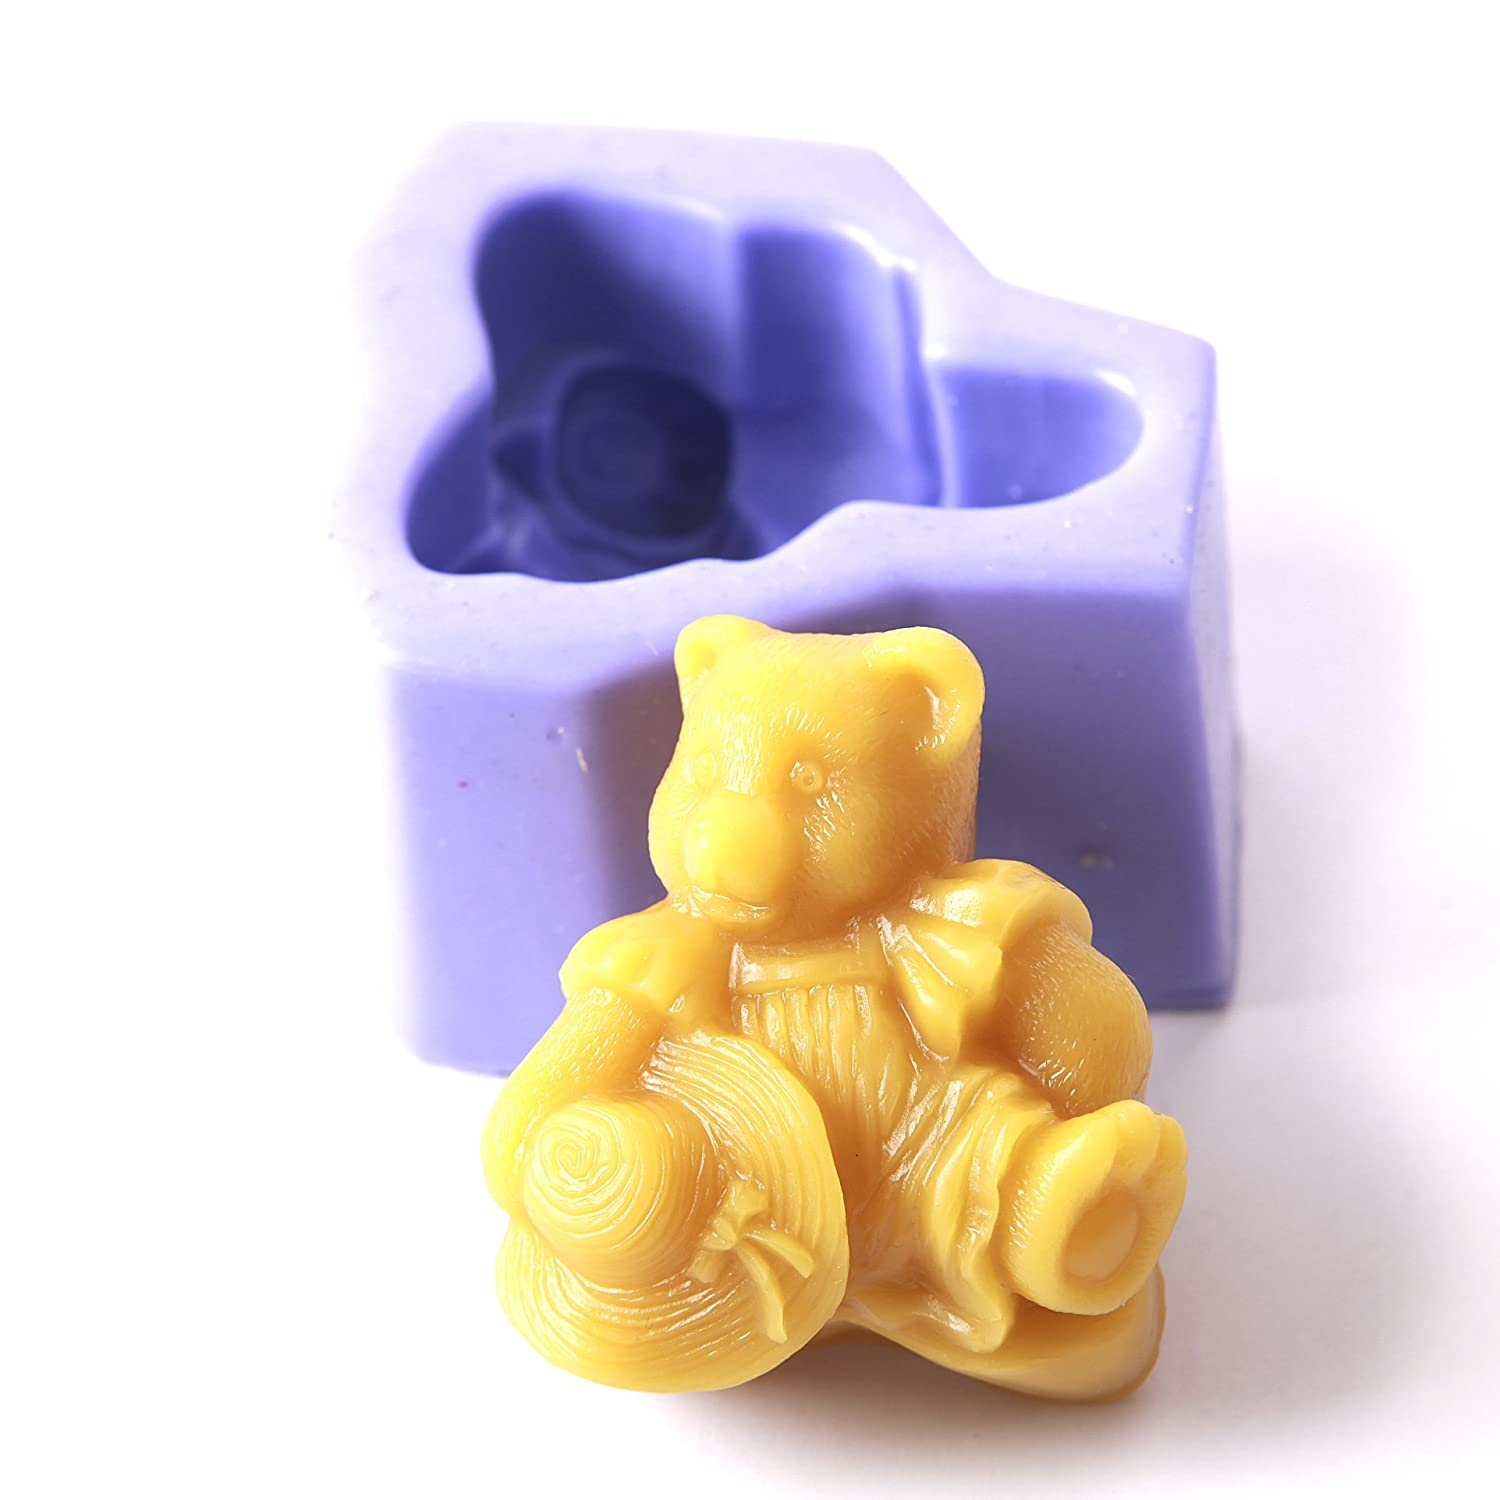 Antique Teddy Silicone Mould x 10   B01MYFFE4Y